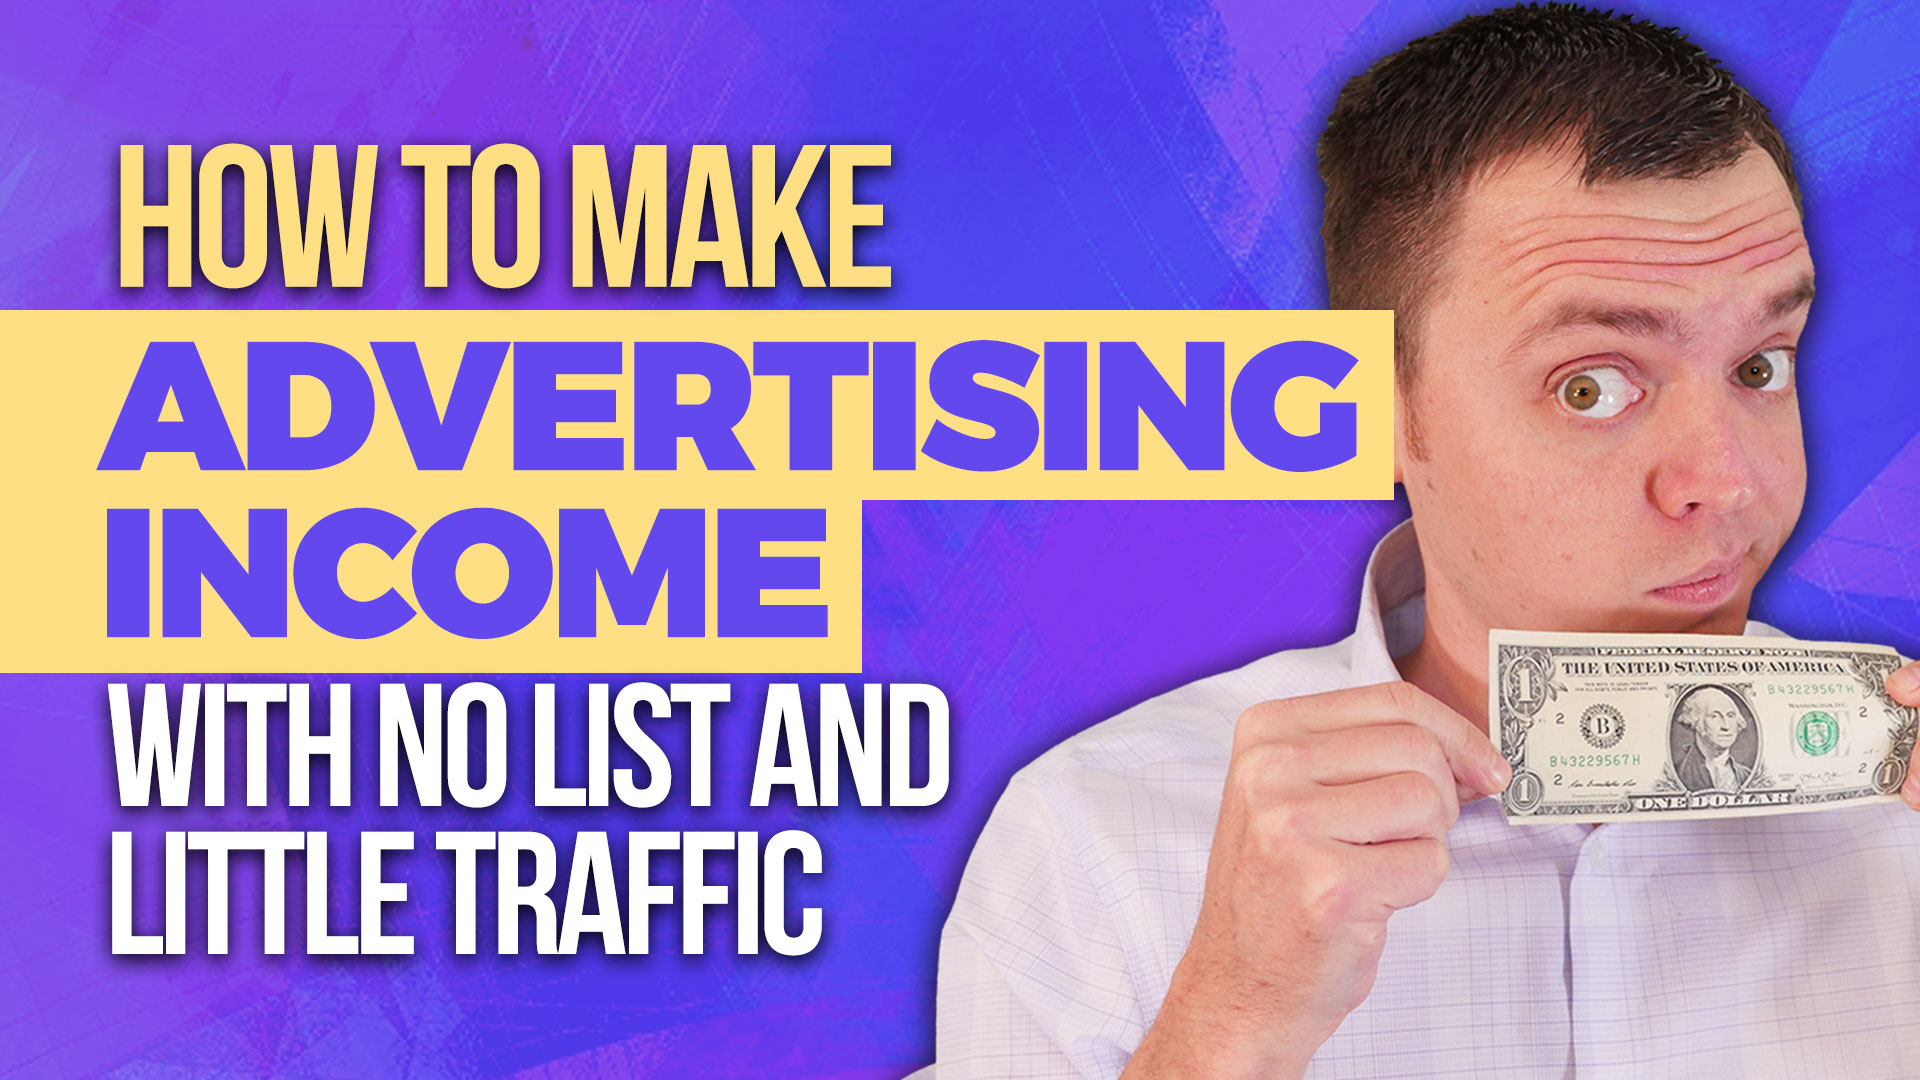 How to Make Advertising Income with No List and Little Traffic